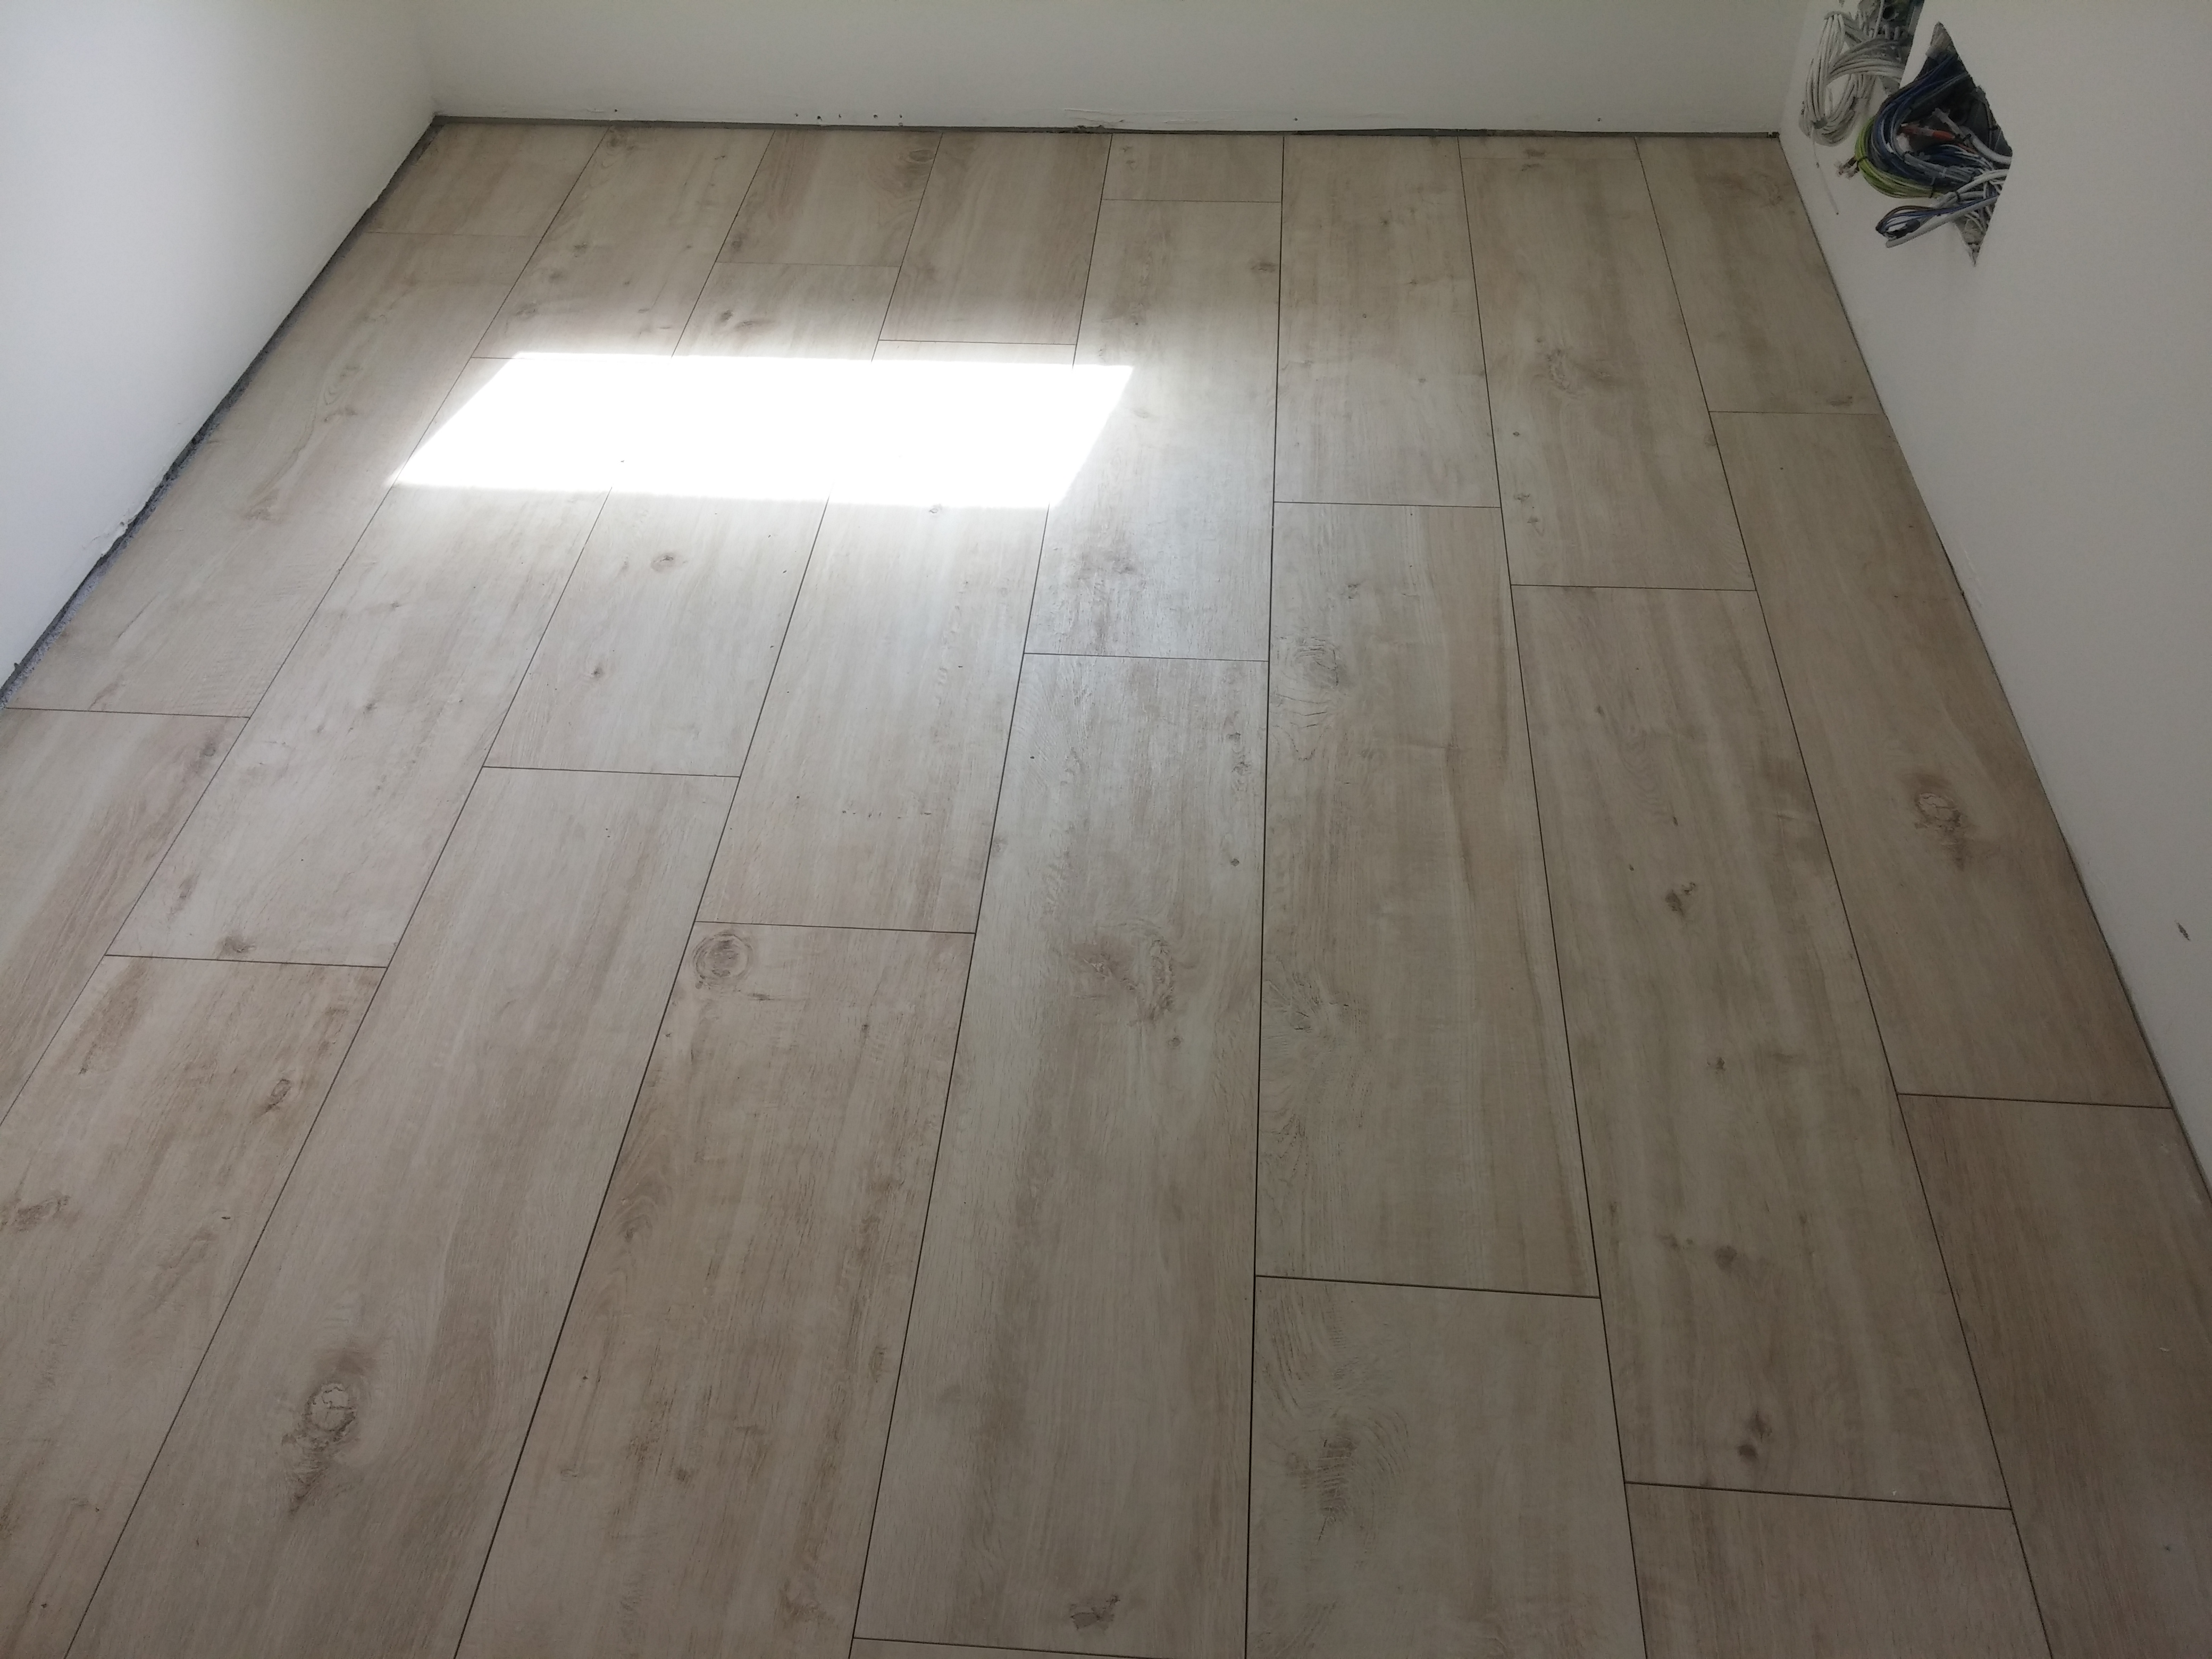 Camere da letto mondo convenienza for Gres simil parquet